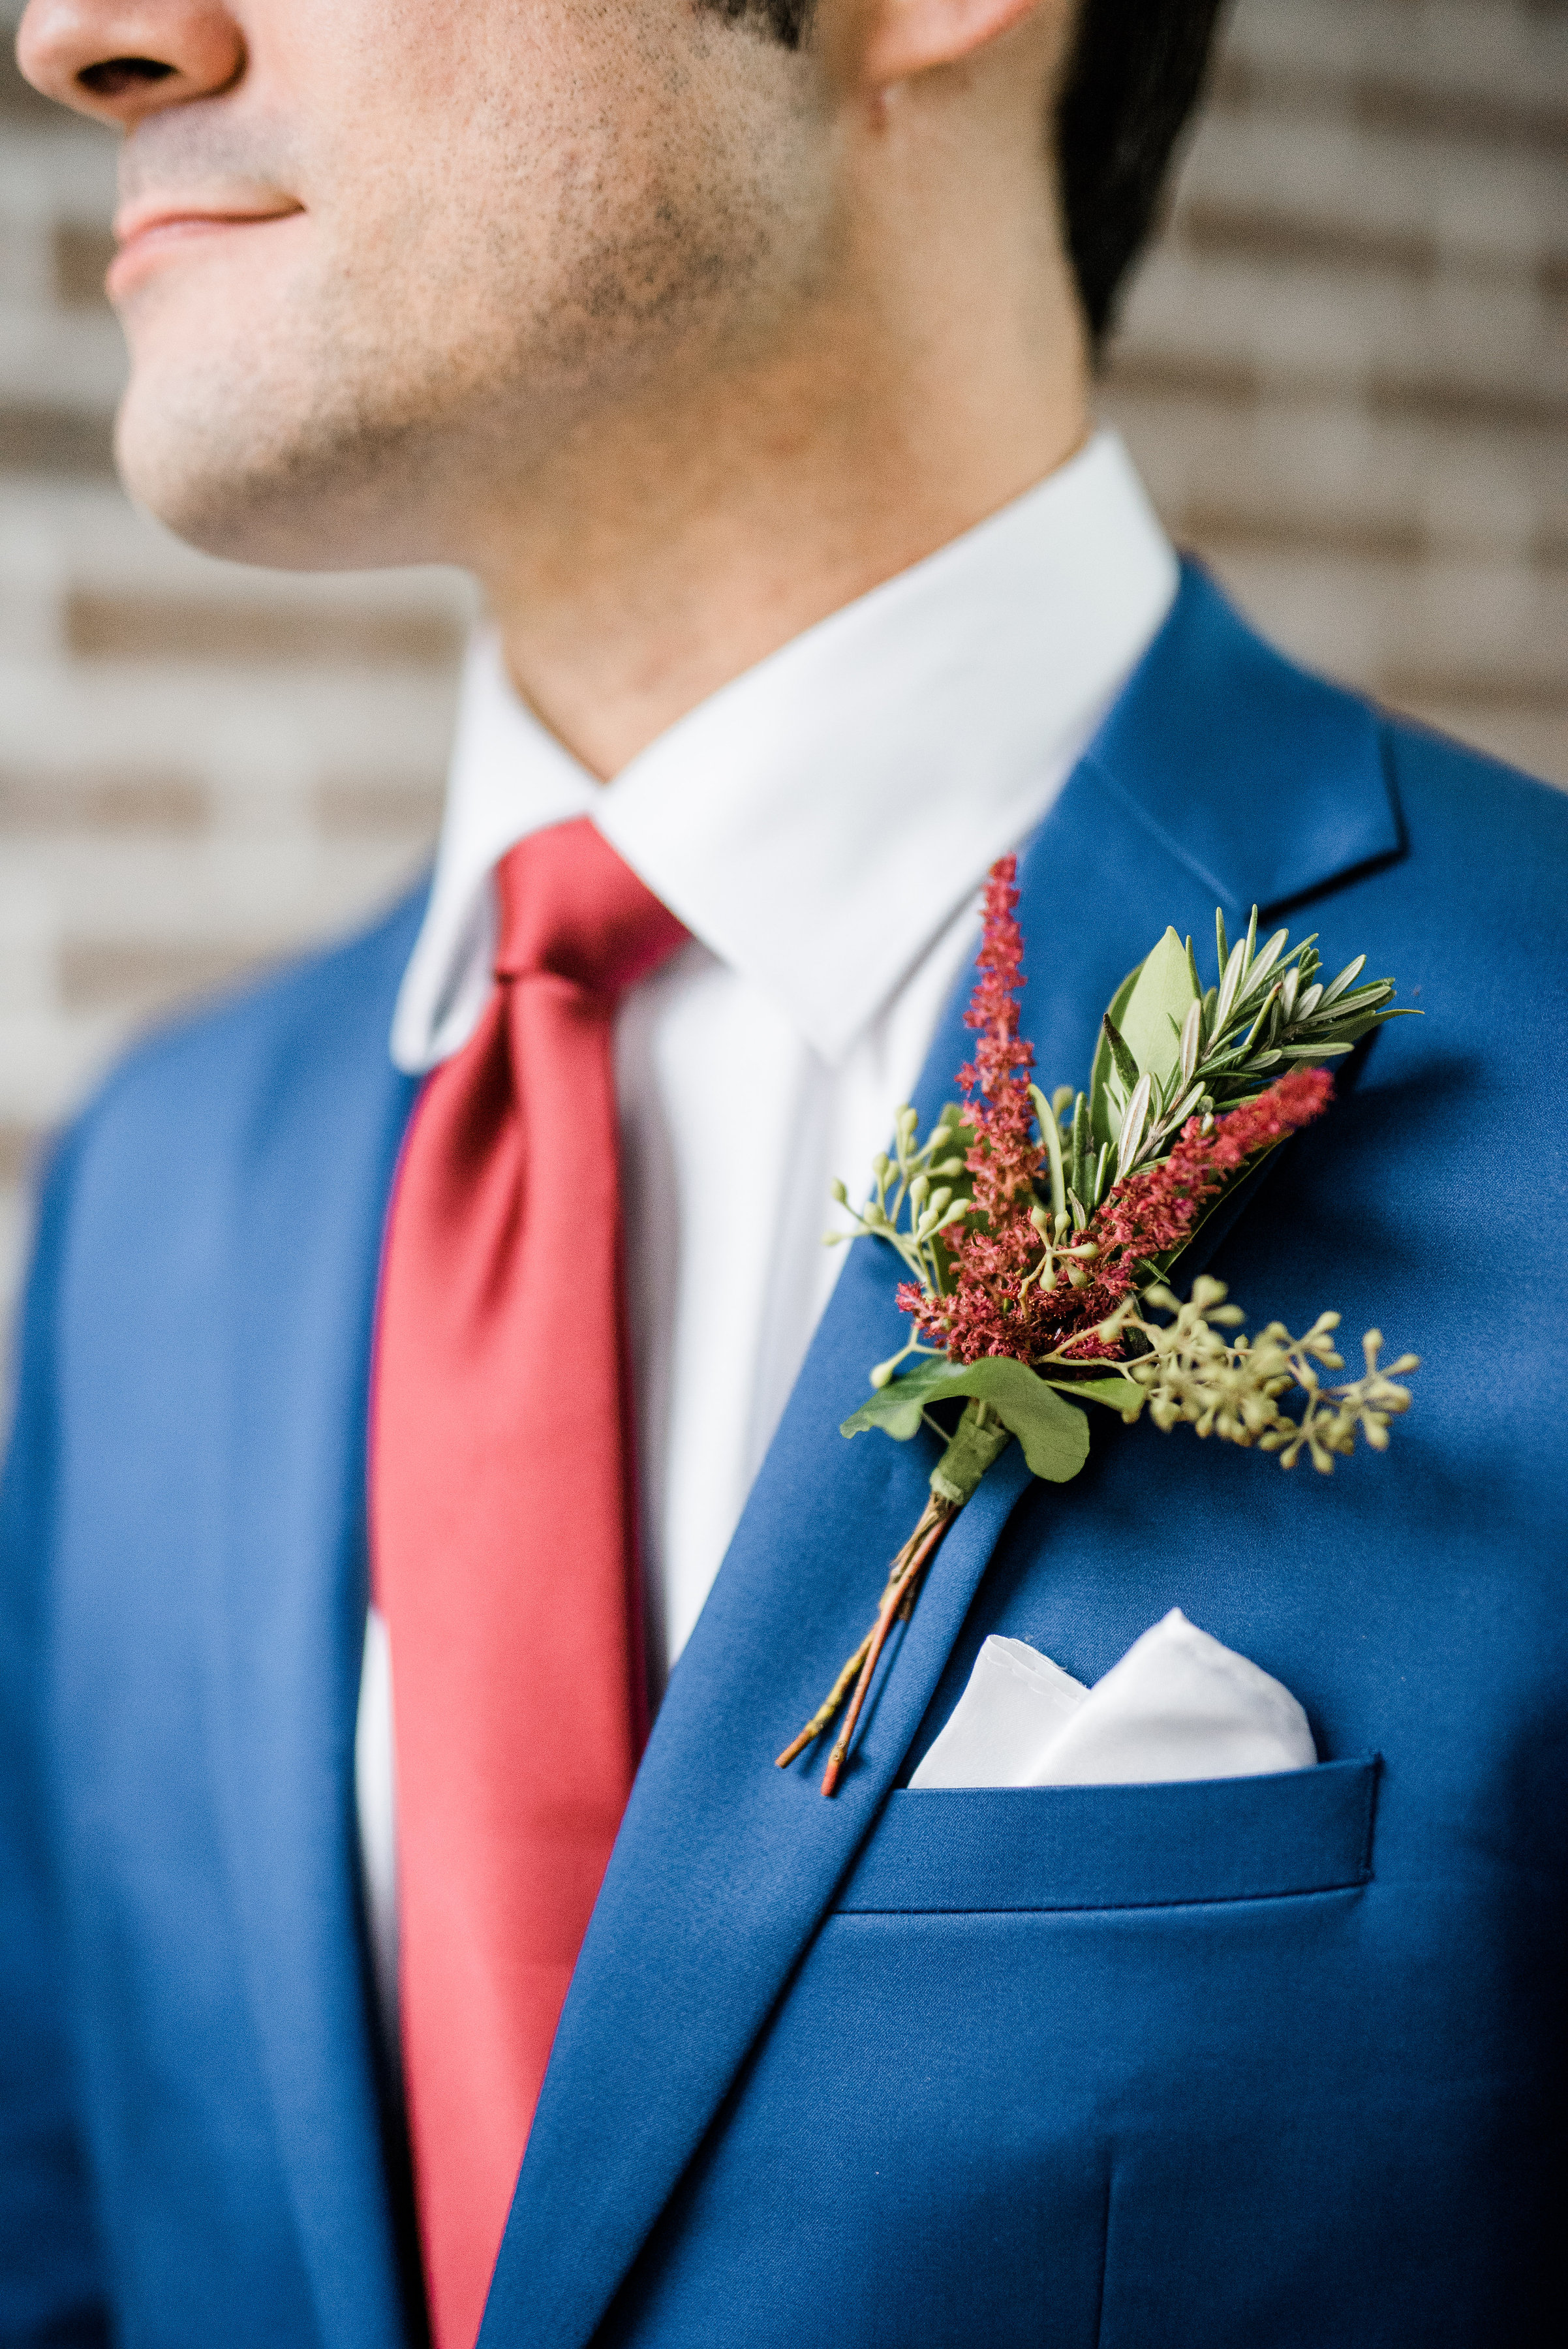 Boutonnieres are fun because you can make them match with the bridesmaids bouquets and use them to bring out fun accent colors of your color scheme.